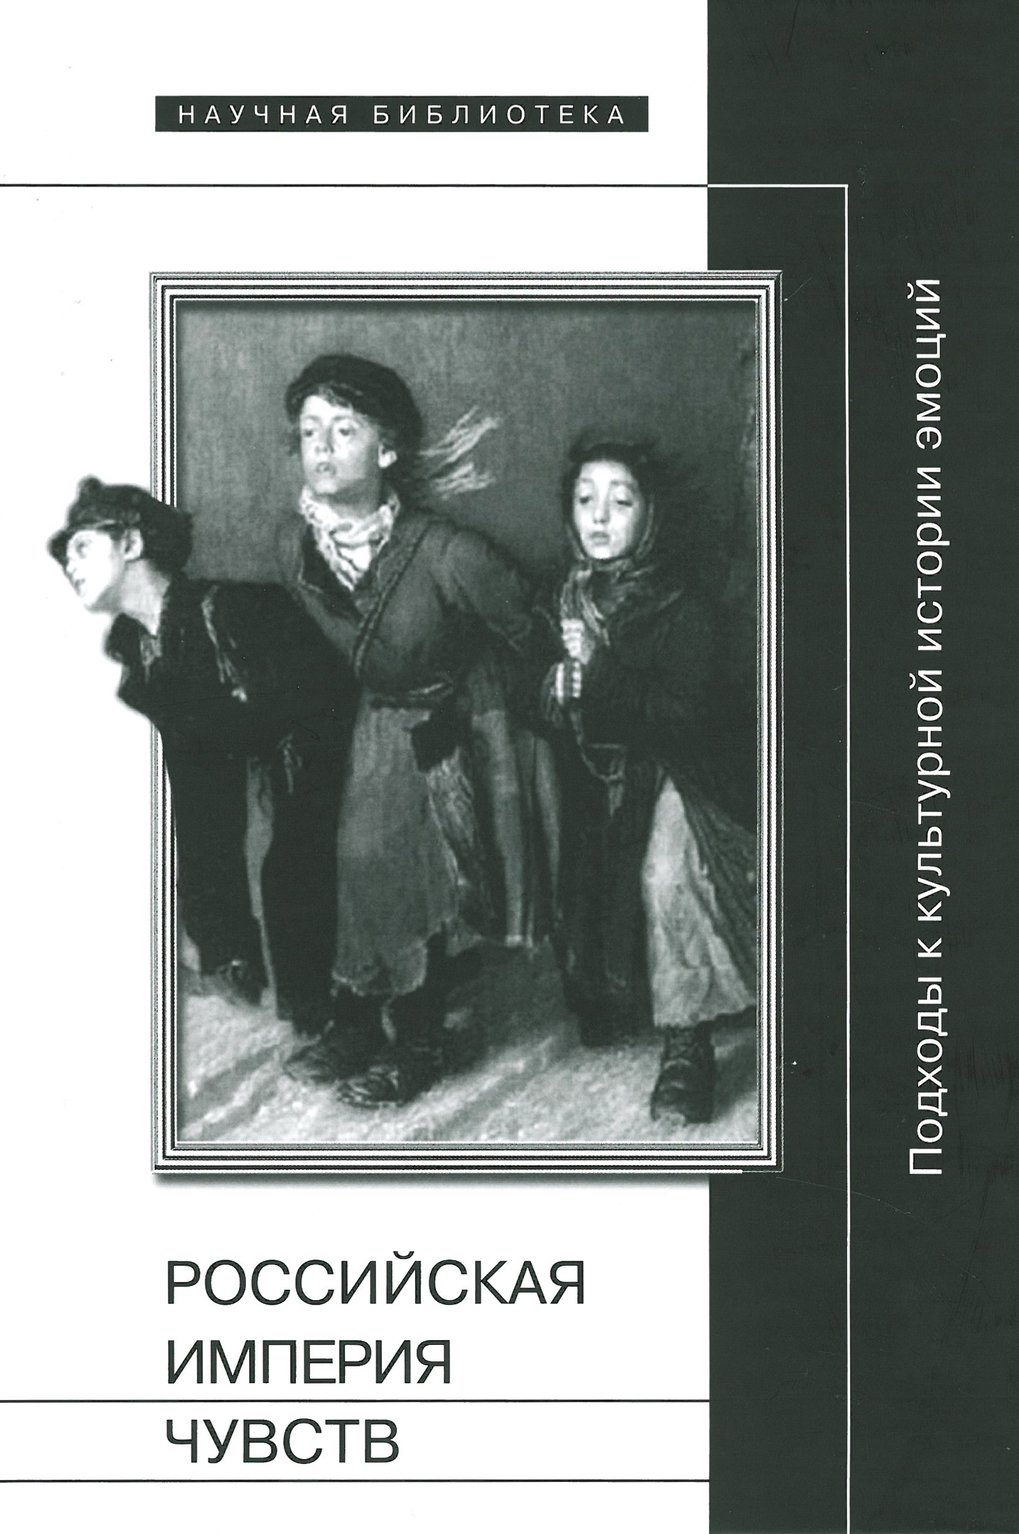 Jan Plamper/Shamy Schahadat/Marc Elie (eds.),<em> Rossiiskaia imperiia chuvstv: Podkhody k kult'turnoi istorii emotsii</em> [In the Russian Realm of Feelings: Approaches to the Cultural History of Emotions]. Moscow: NLO, 2010.